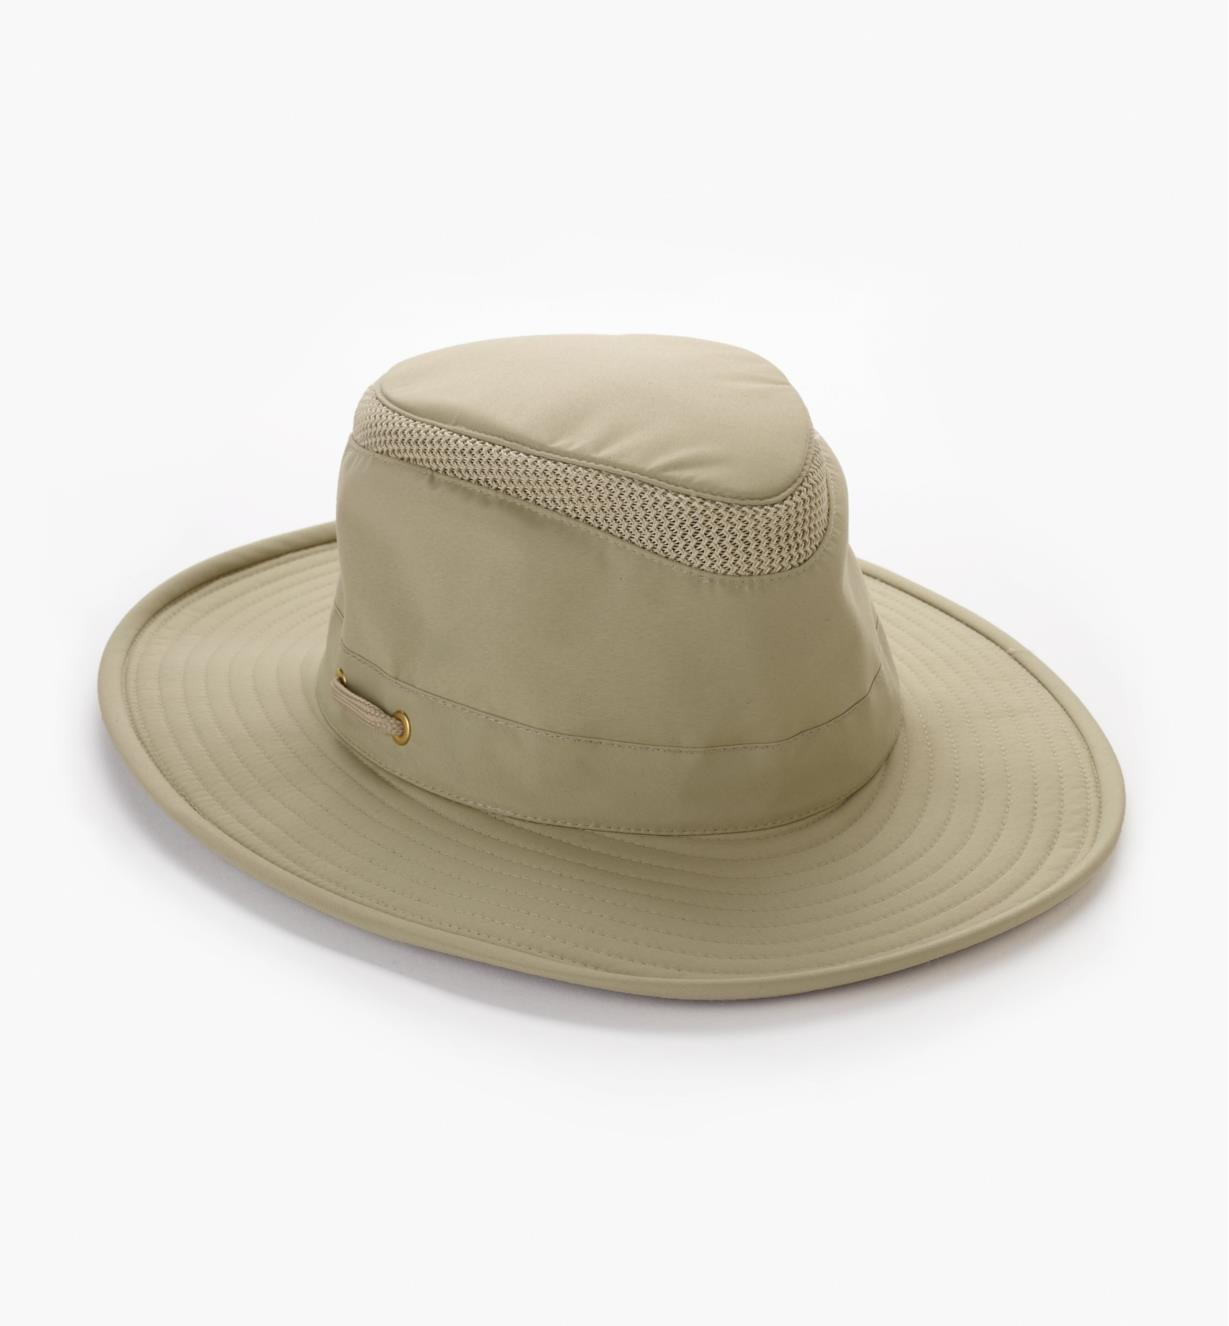 Tilley Airflo Hat, Classic